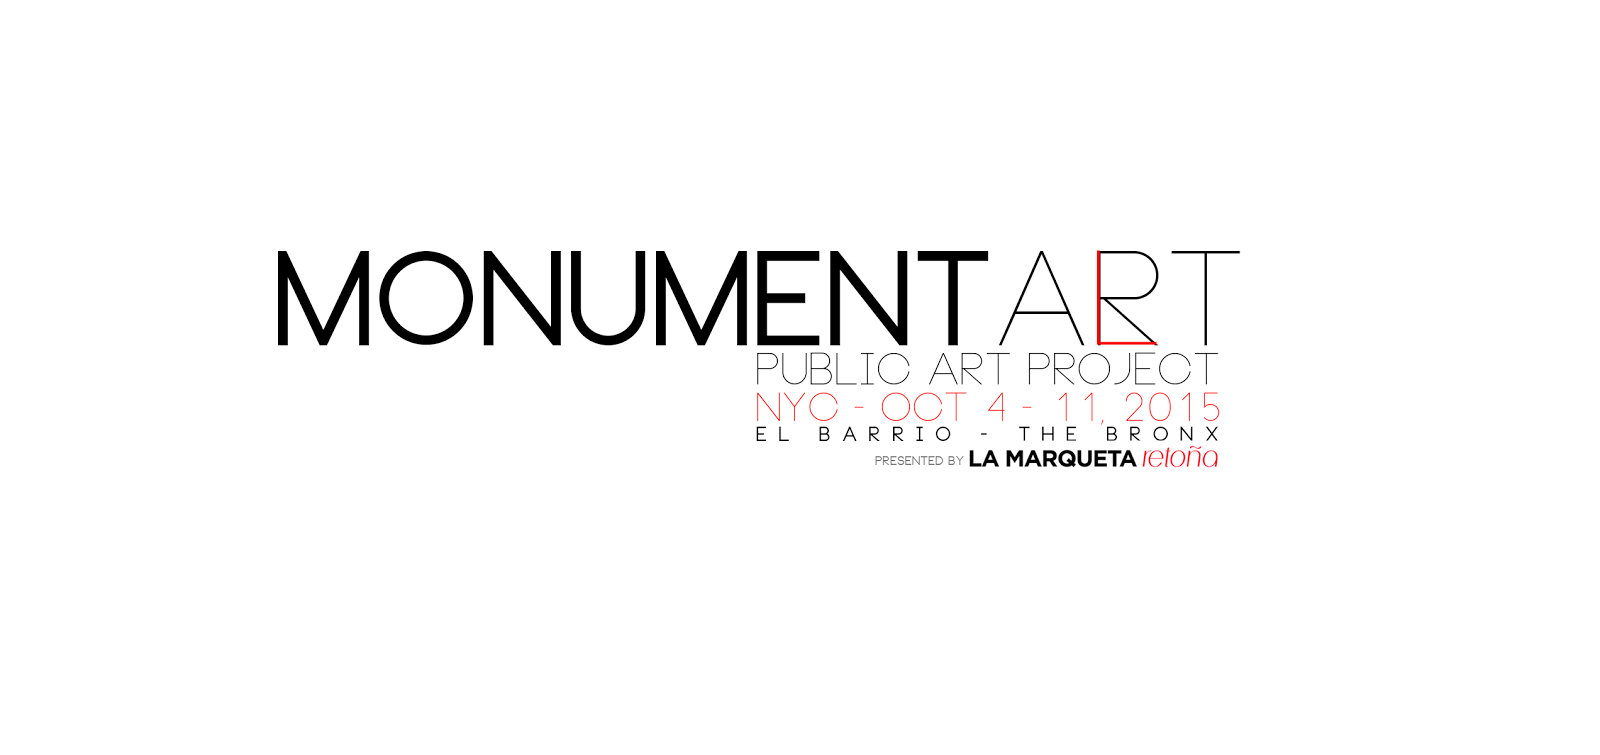 MONUMENT ART PROJECT